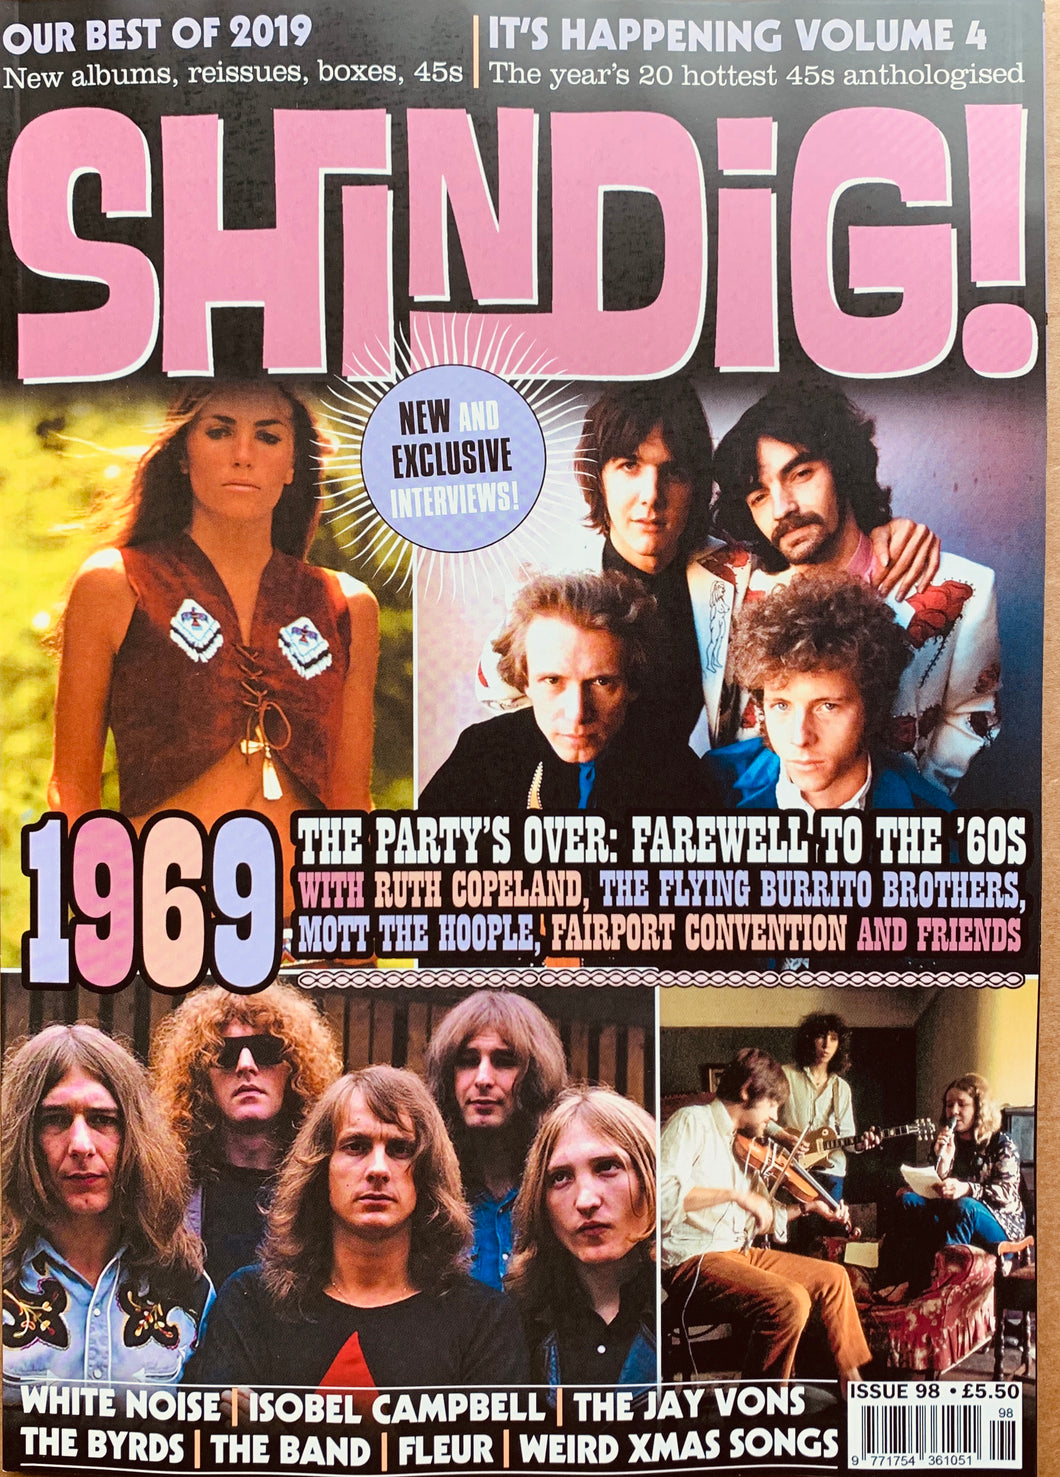 Shindig! Magazine Issue 098 (December 2019)